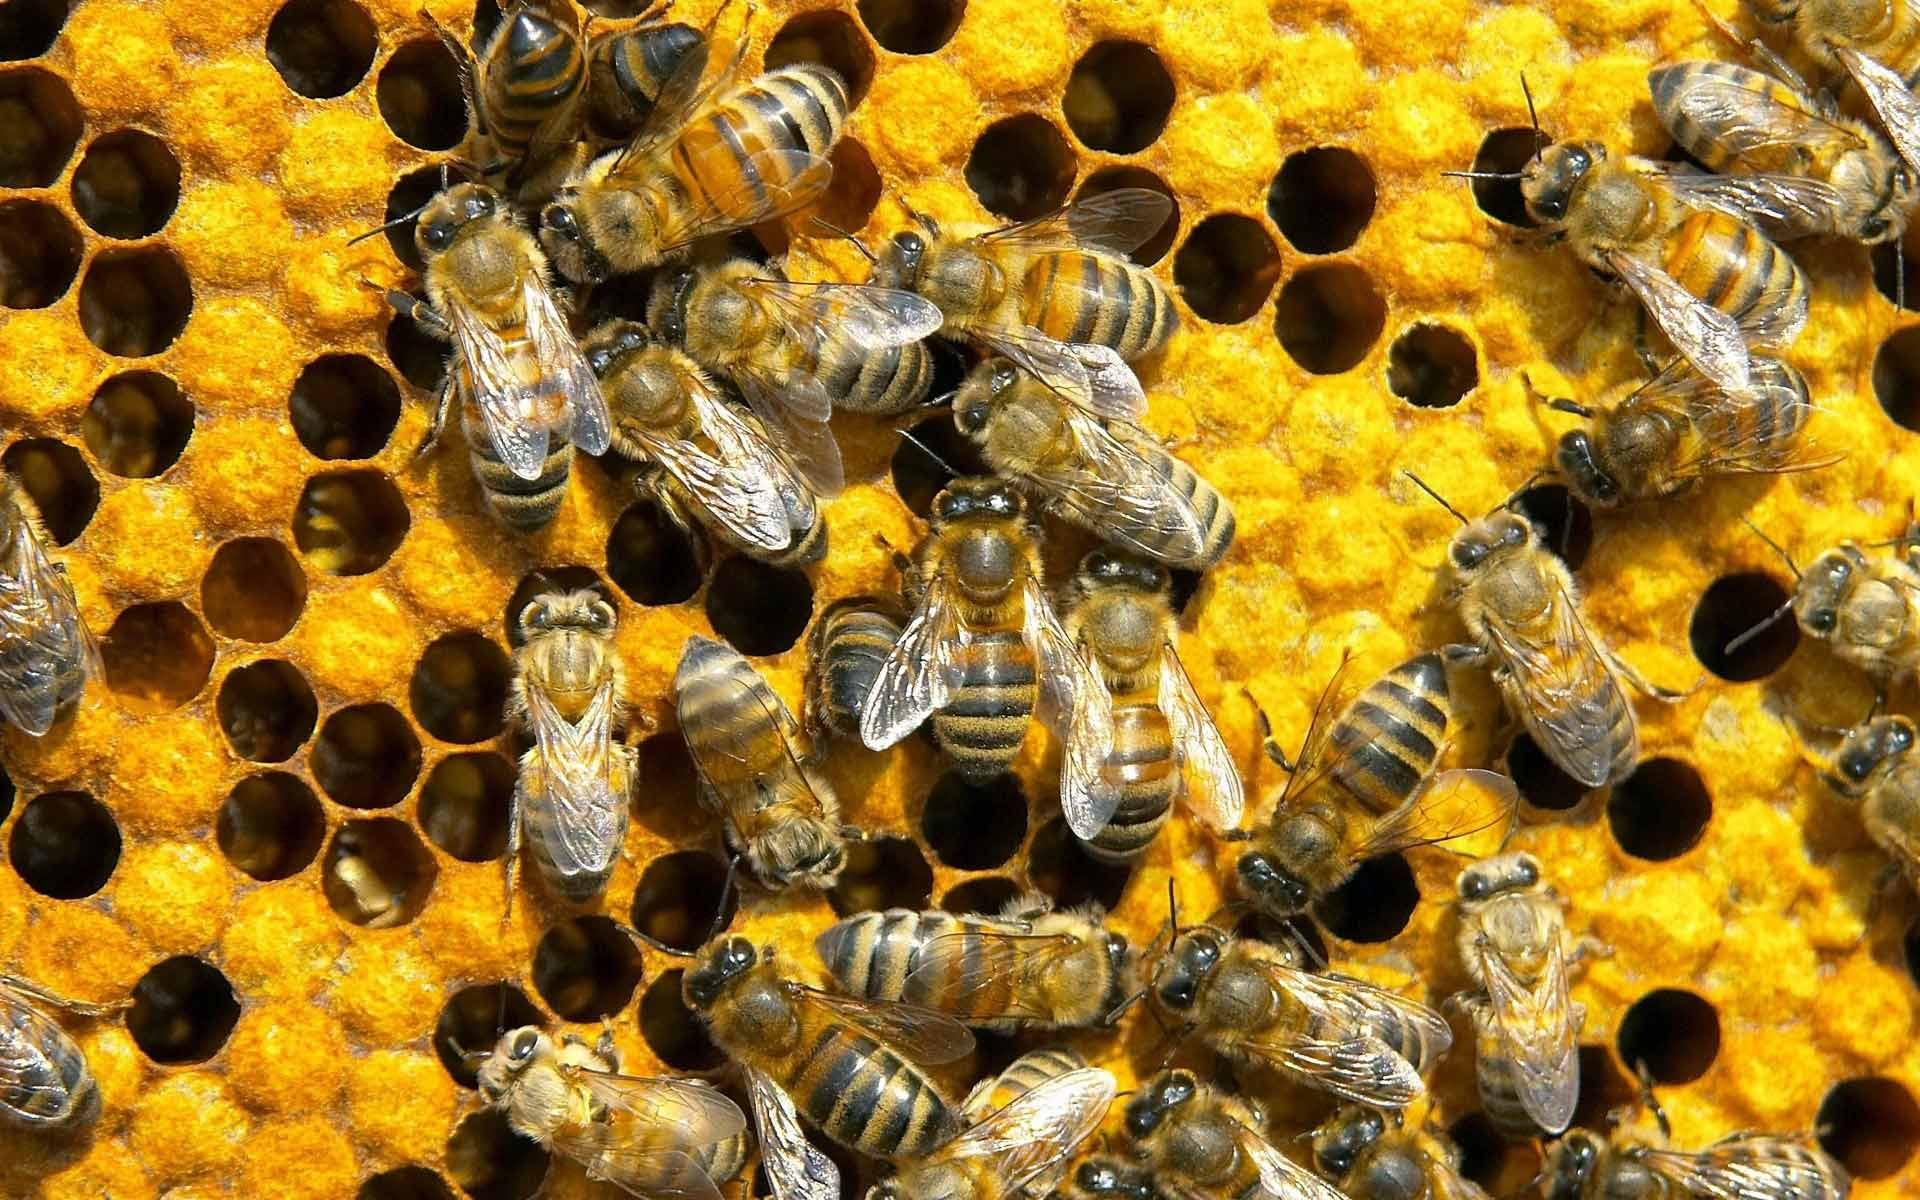 [Why Are Bees Sick? A Search for Synergistic Effects]